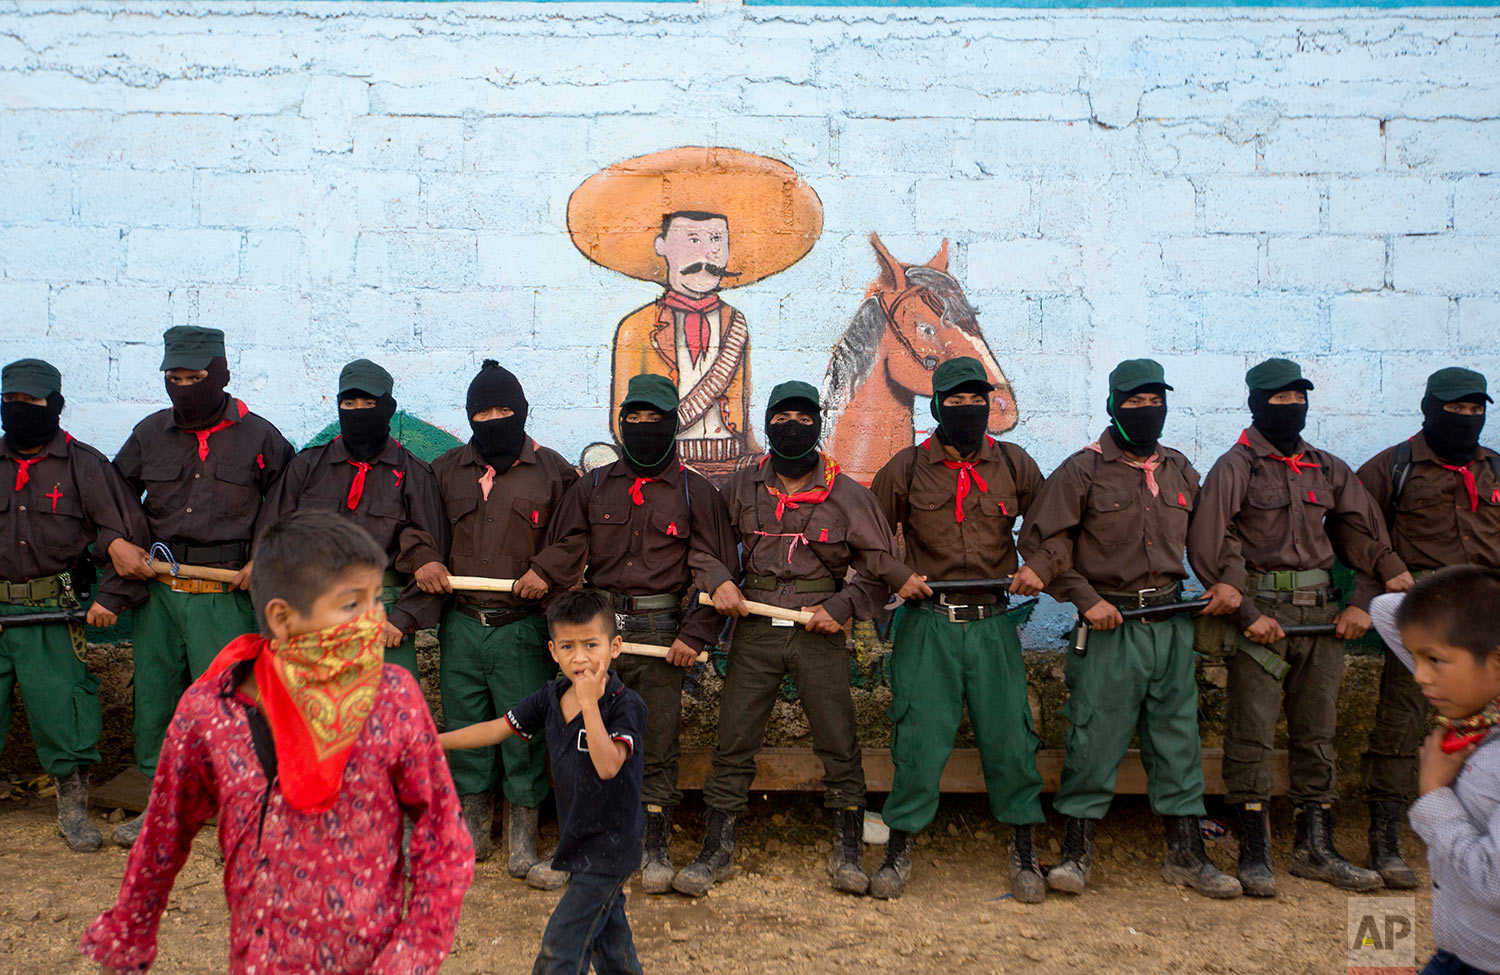 Members of the Zapatista National Liberation Army (EZLN) provide security for a campaign rally by presidential candidate for the National Indigenous Congress, Maria de Jesus Patricio, in the Zapatista stronghold of La Garrucha in the southern state of Chiapas, Mexico, Monday, Oct. 16, 2017. The mural features Mexican revolutionary leader Emiliano Zapata. (AP Photo/Eduardo Verdugo)